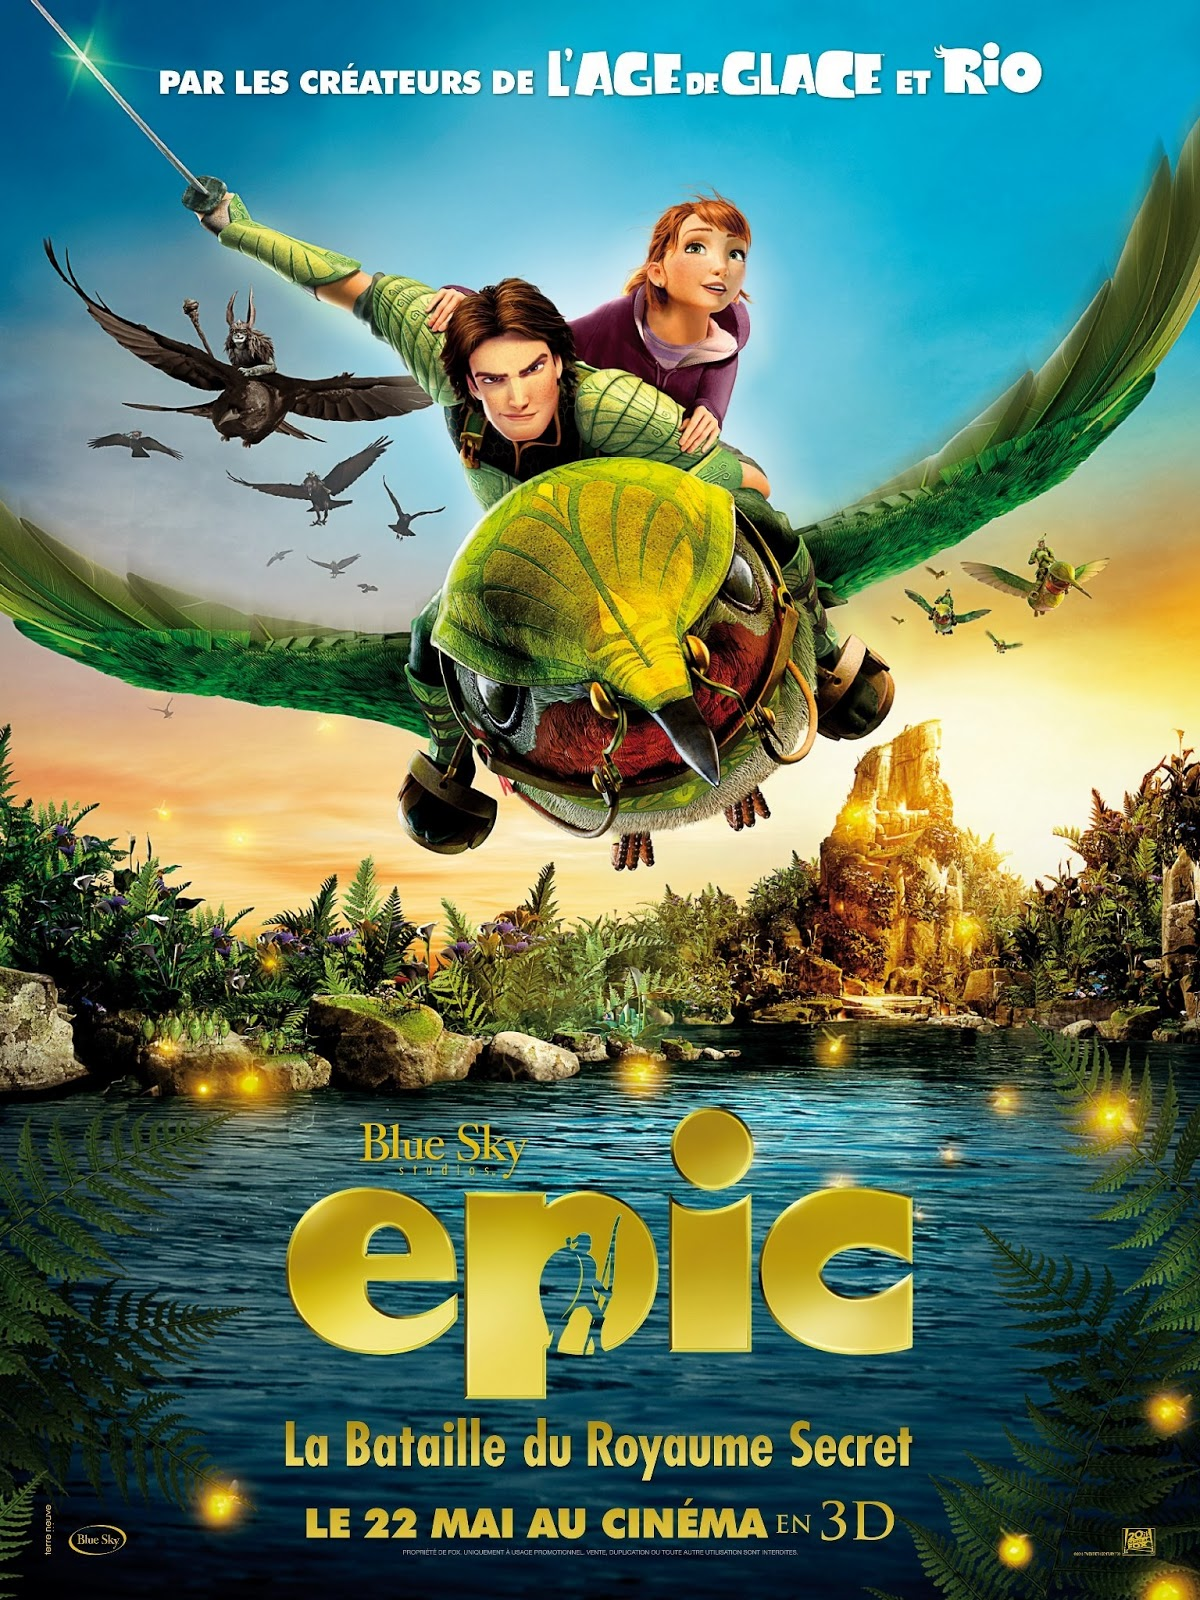 epic poster ice film movies animation